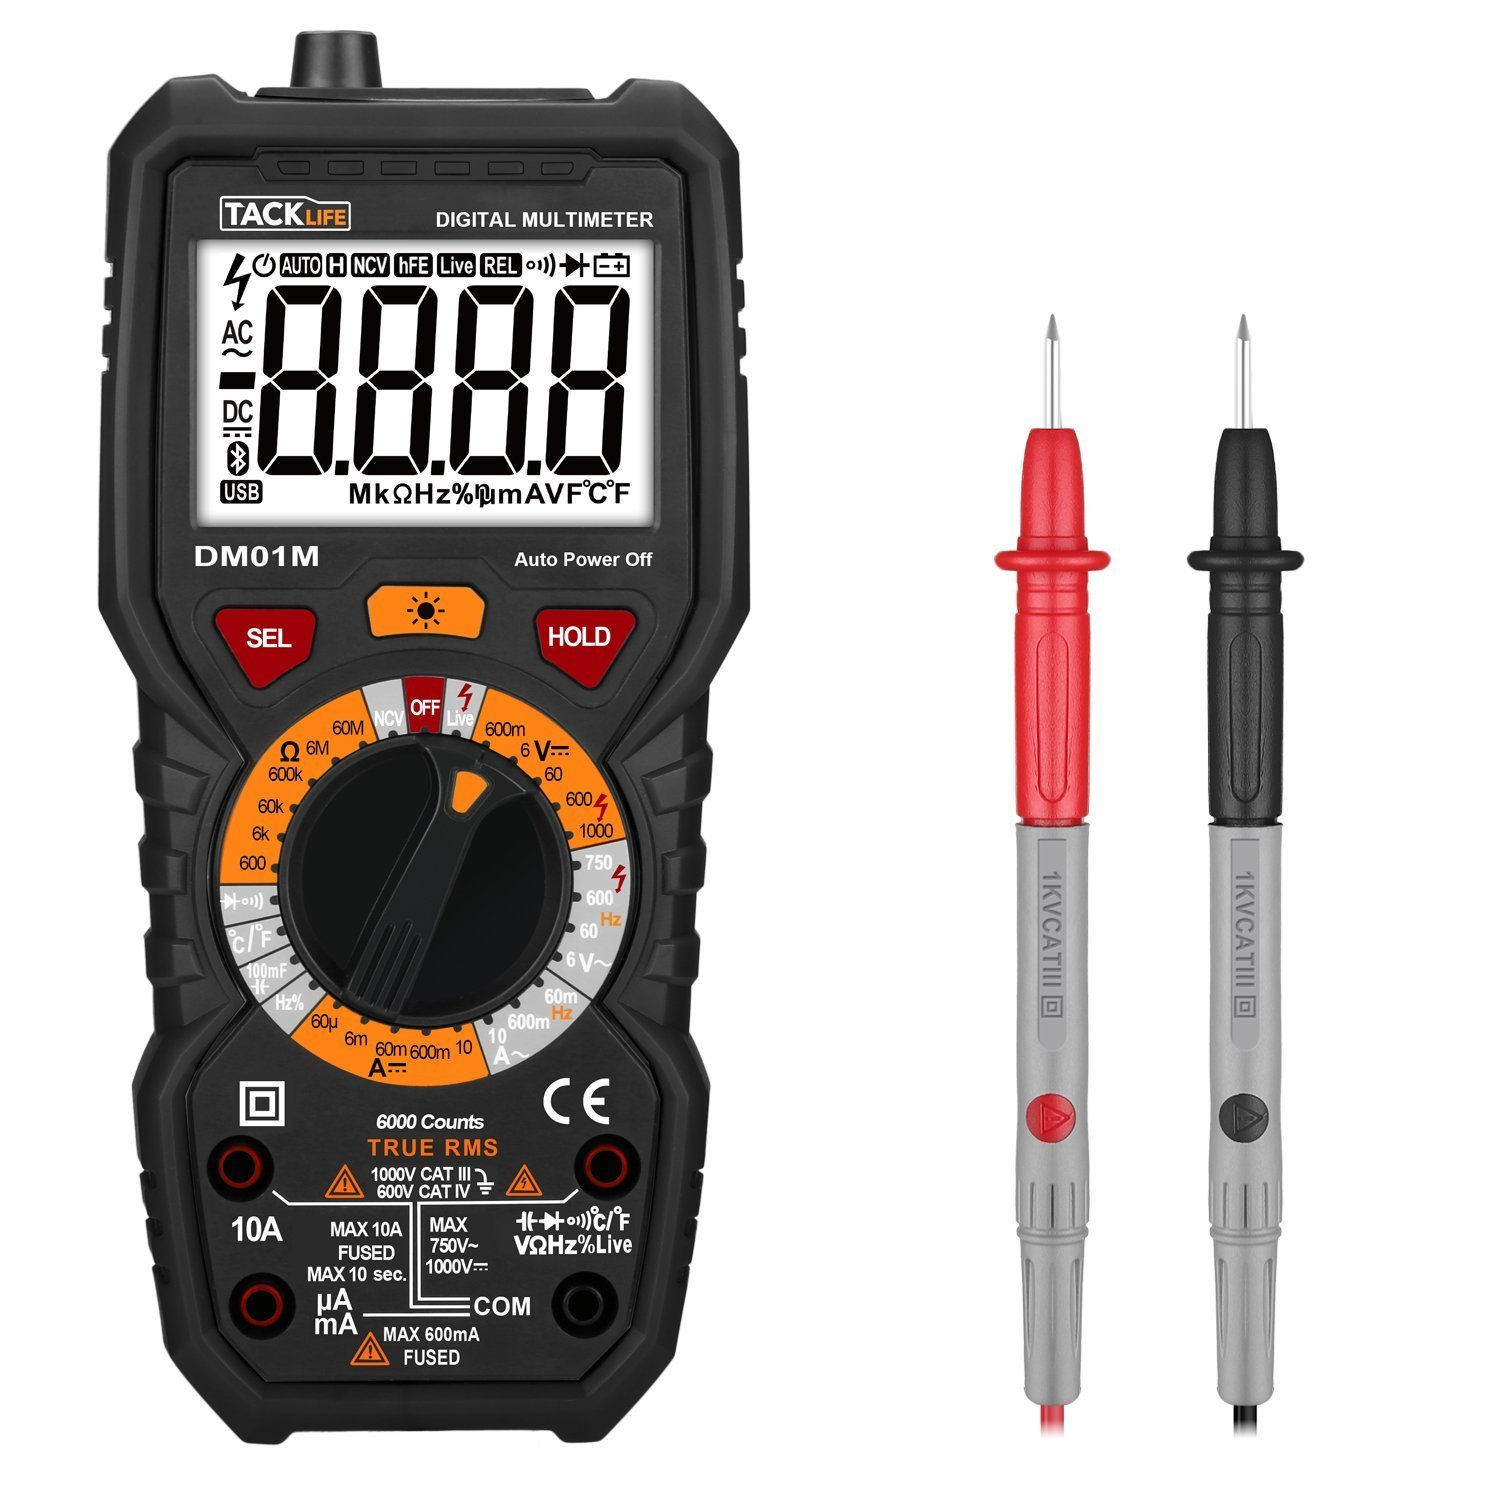 Digital Multimeter, Tacklife DM01M Advanced Multimeter